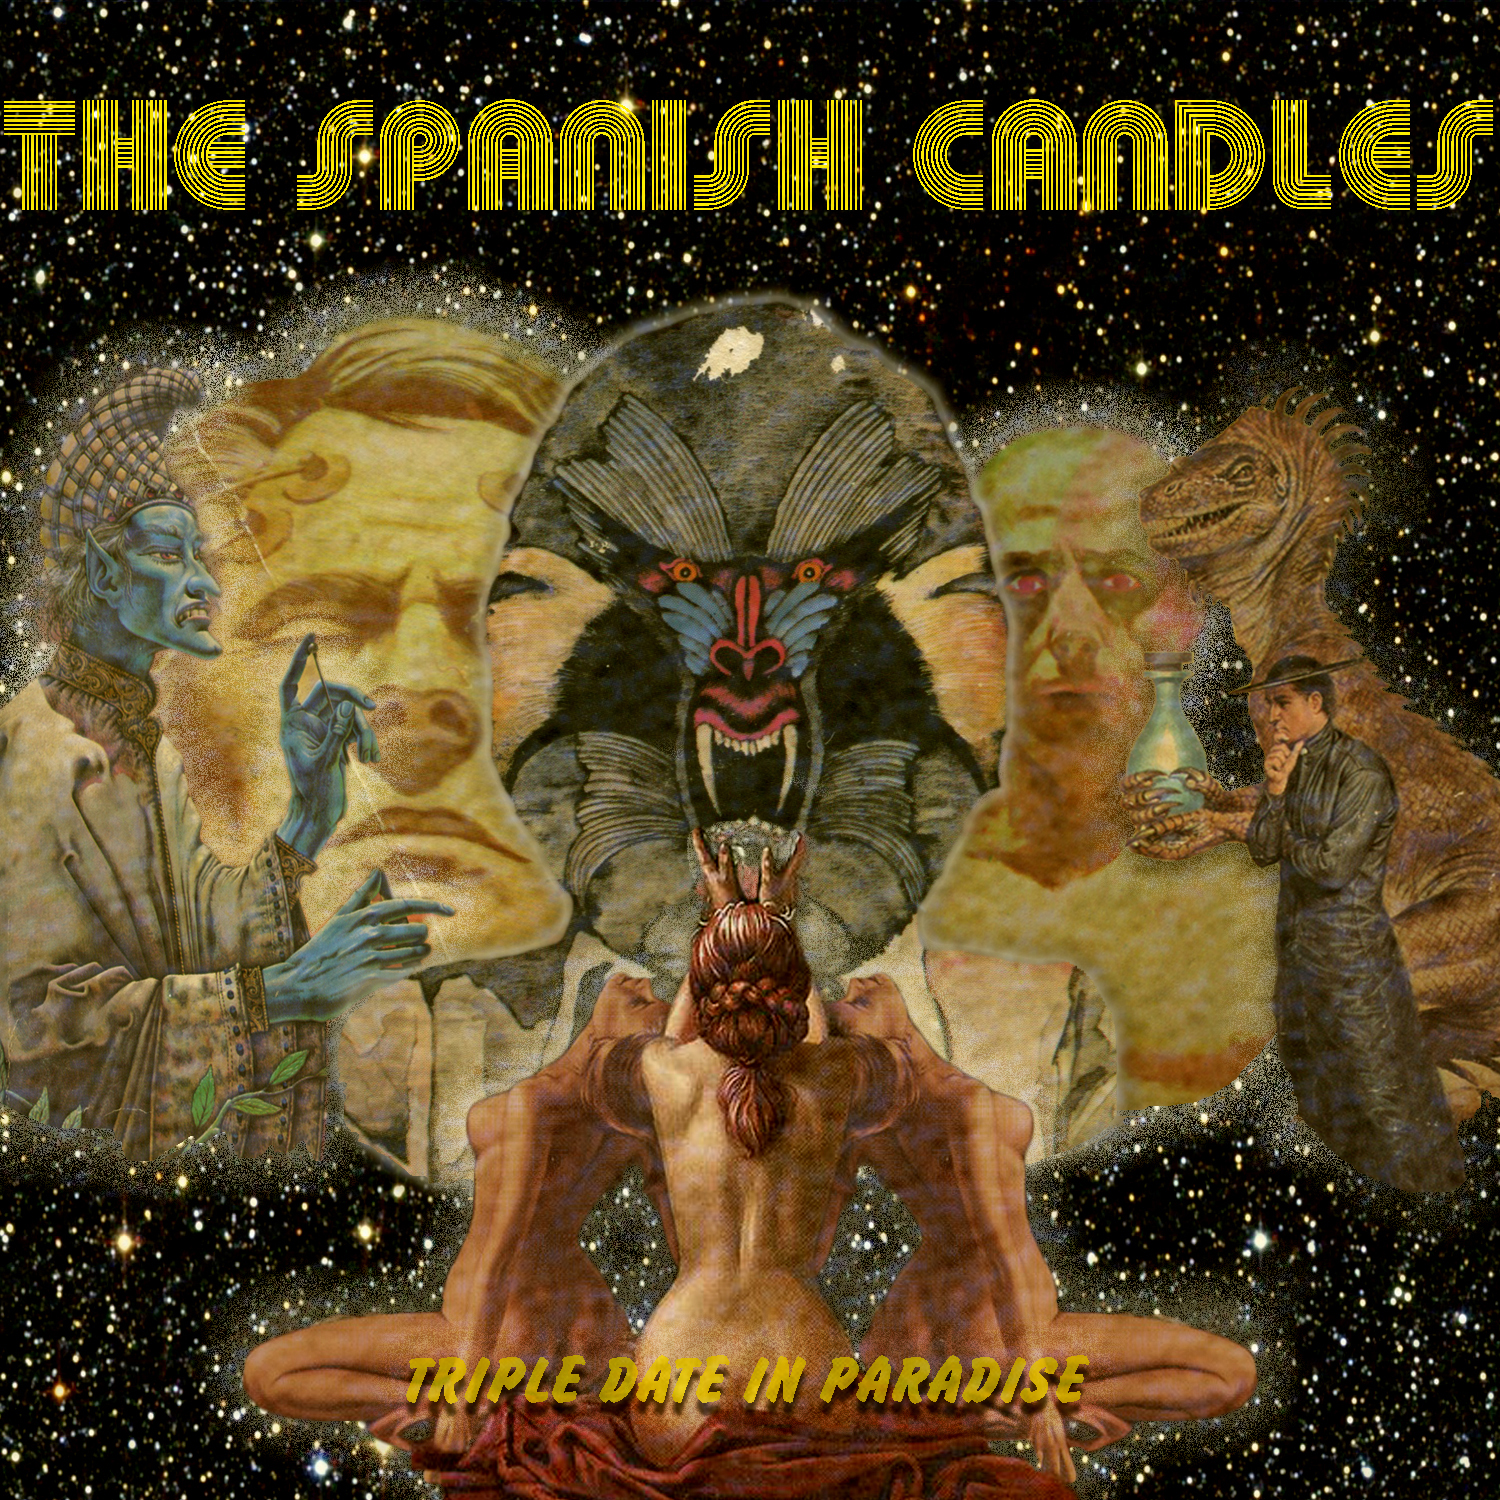 Infinity Cat Cassette Series: The Spanish Candles